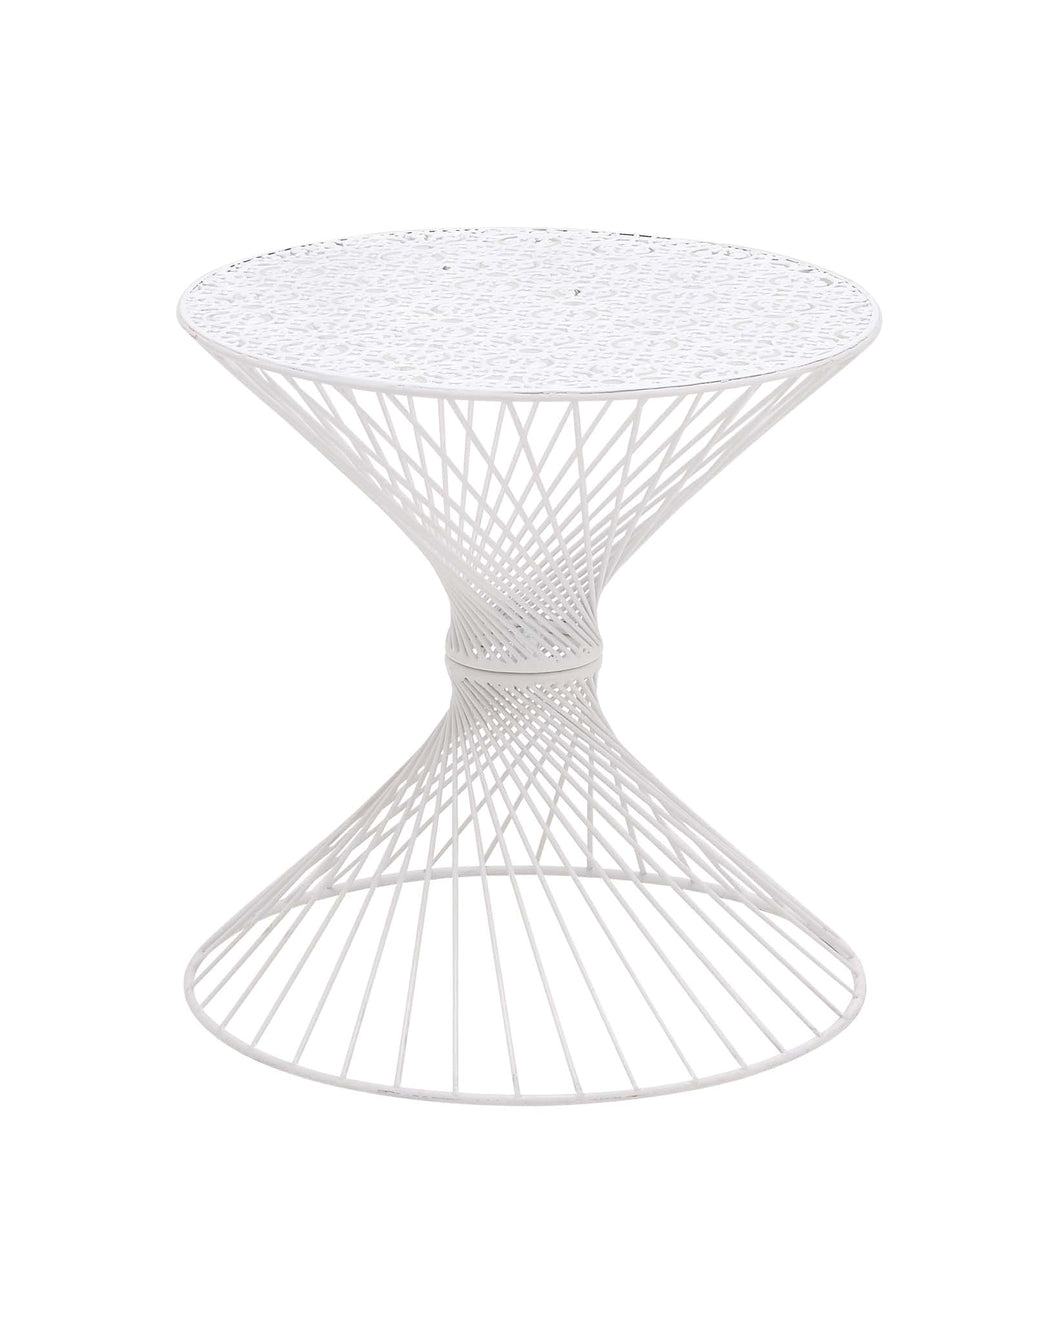 Appealing Styled Metal White Accent Table